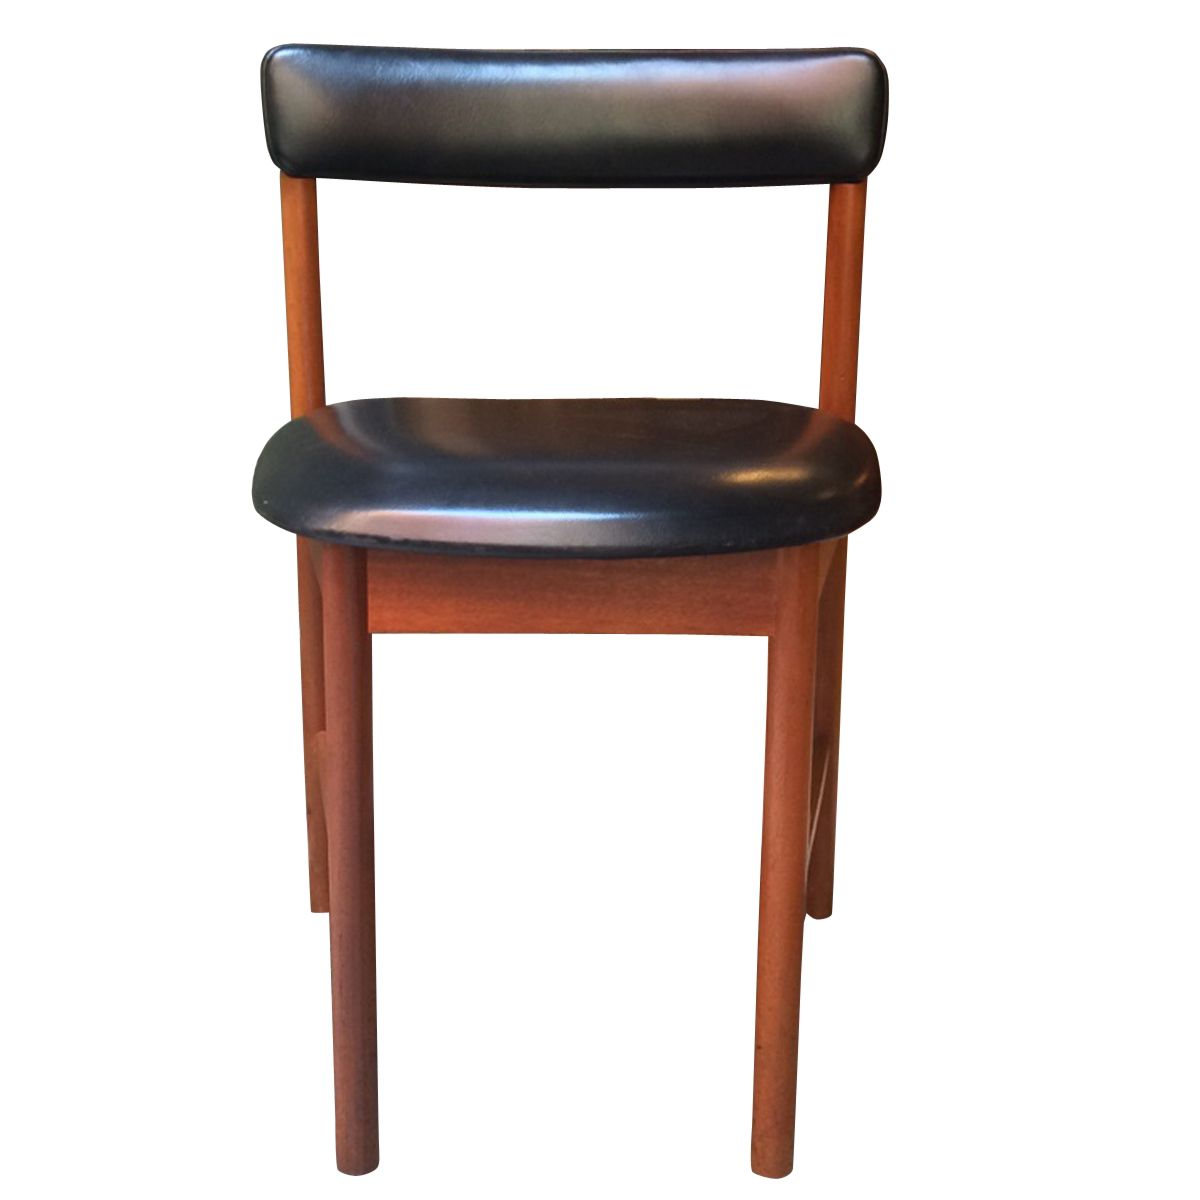 English Dining Chairs, 1960s, Set of 4 for sale at Pamono